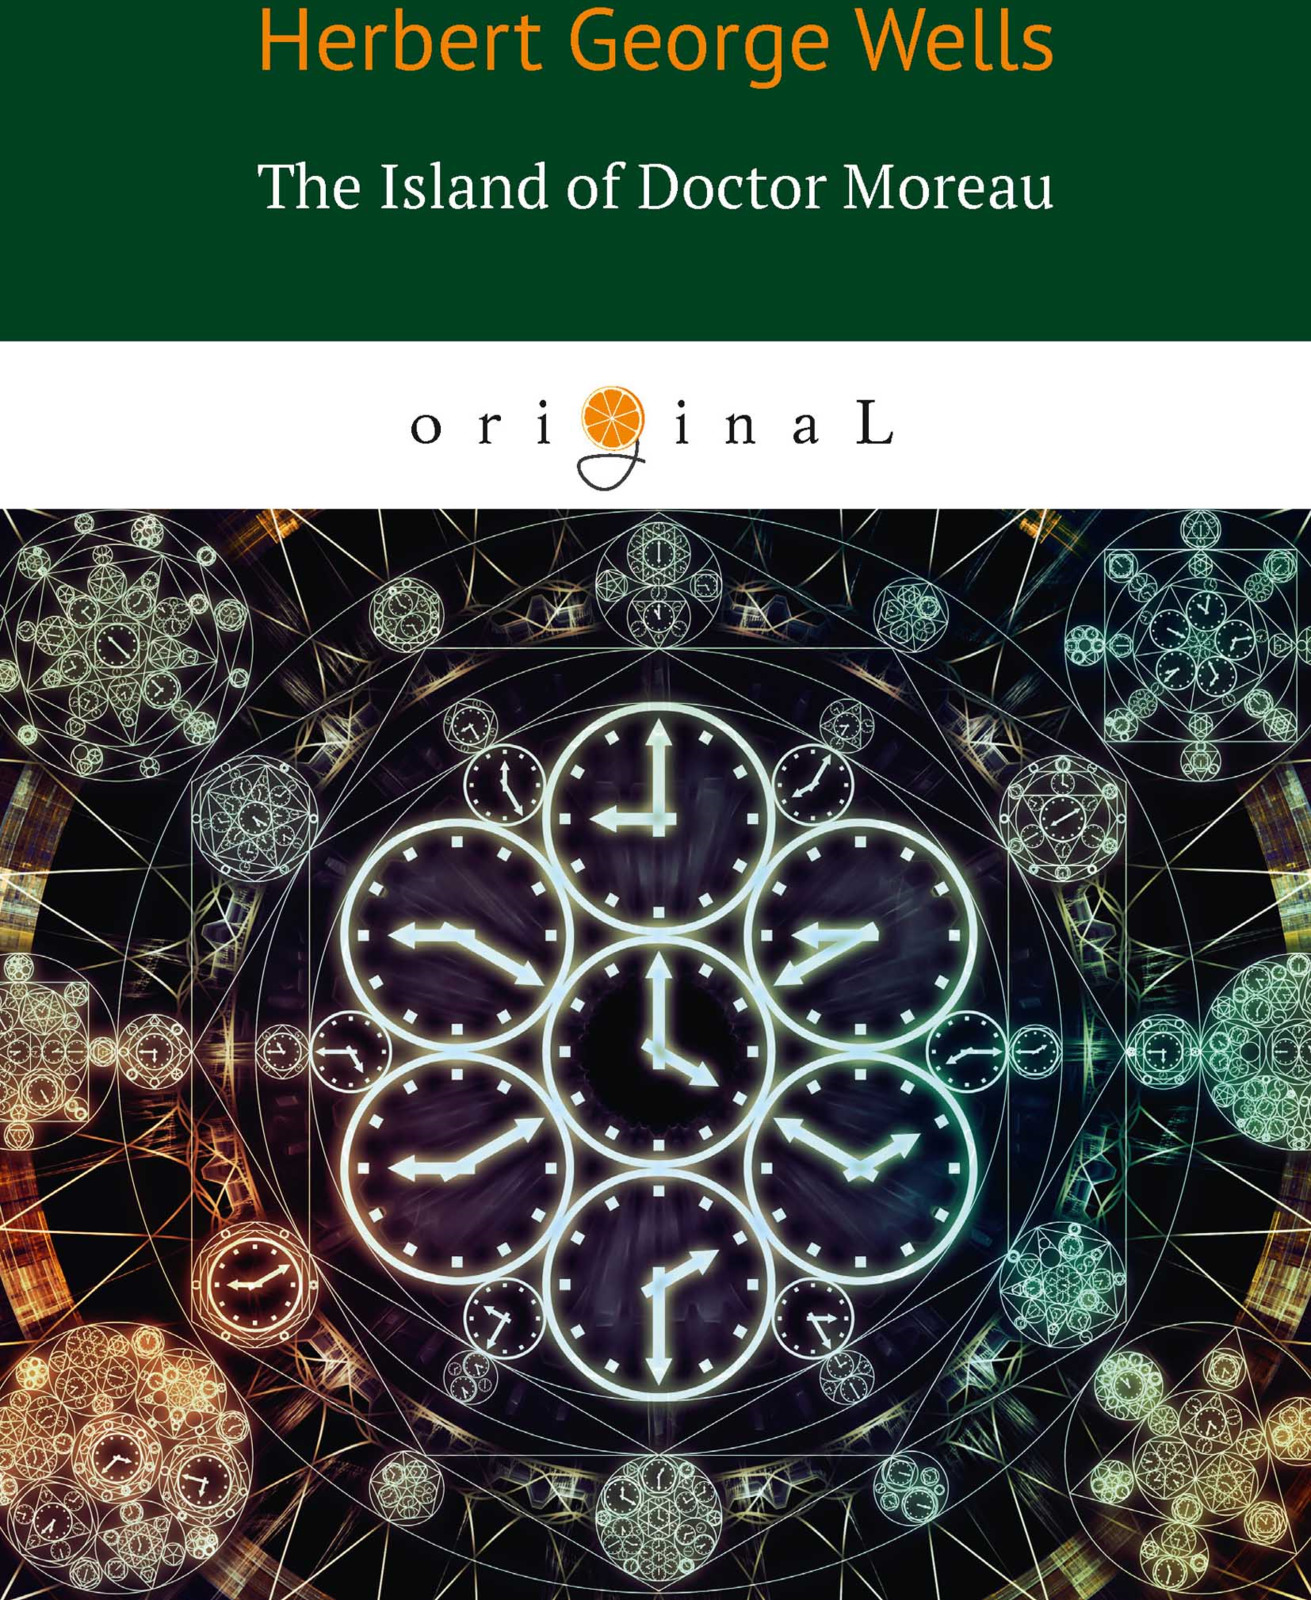 H. G. Wells The Island of Doctor Moreau h g wells the island of doctor moreau a possibility